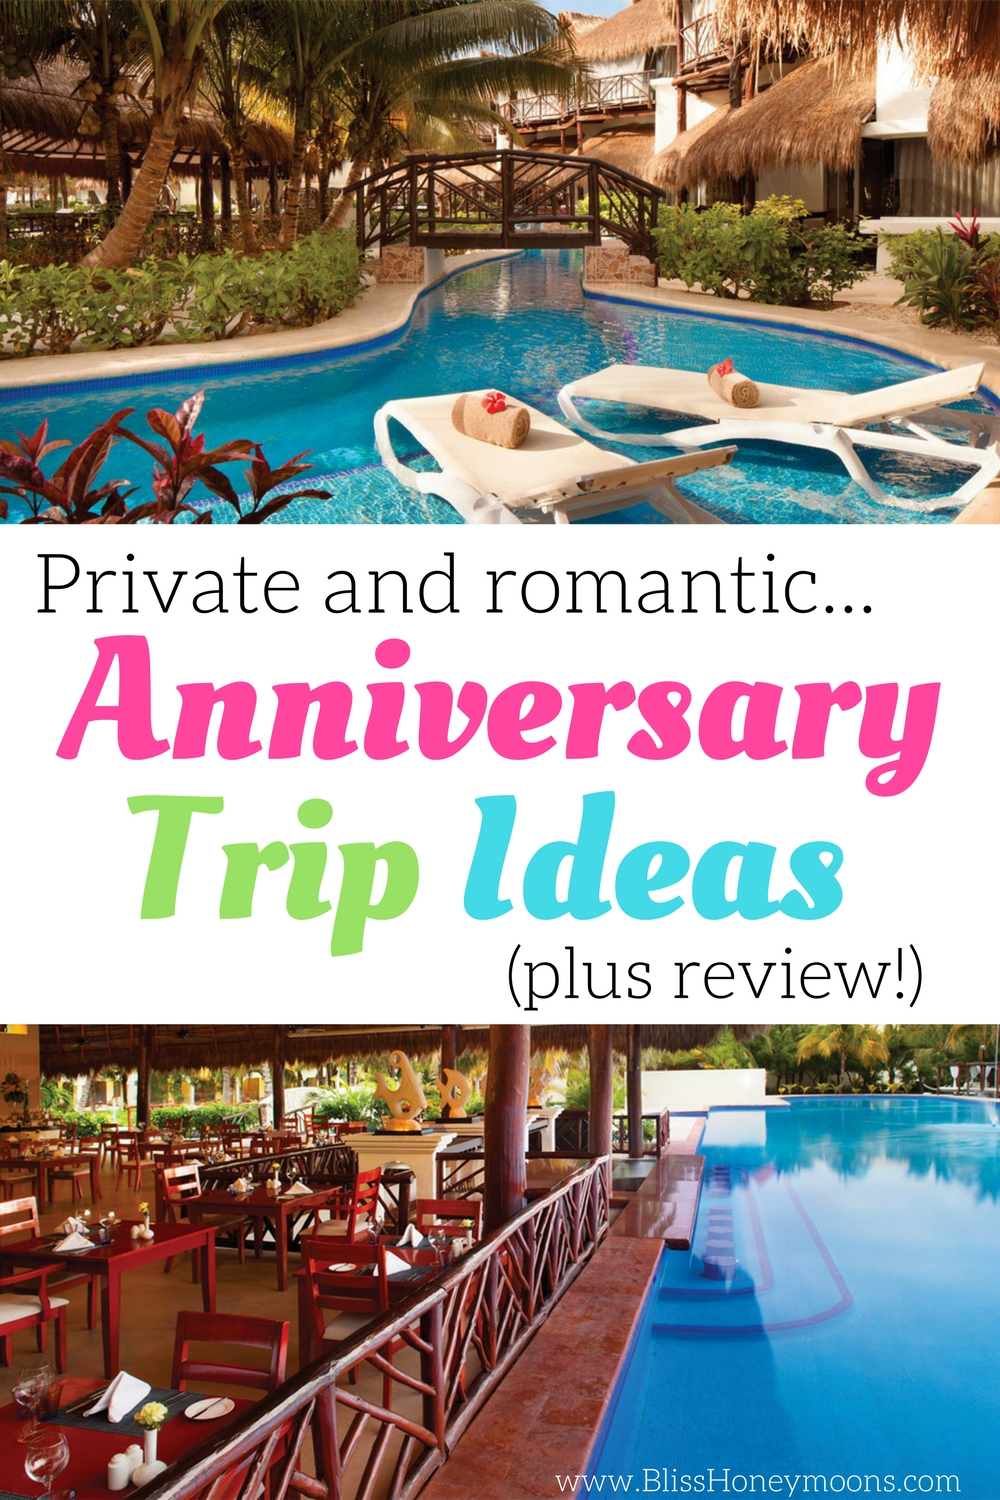 Private and romantic anniversary trip ideas plus review for Where to go for anniversary trip